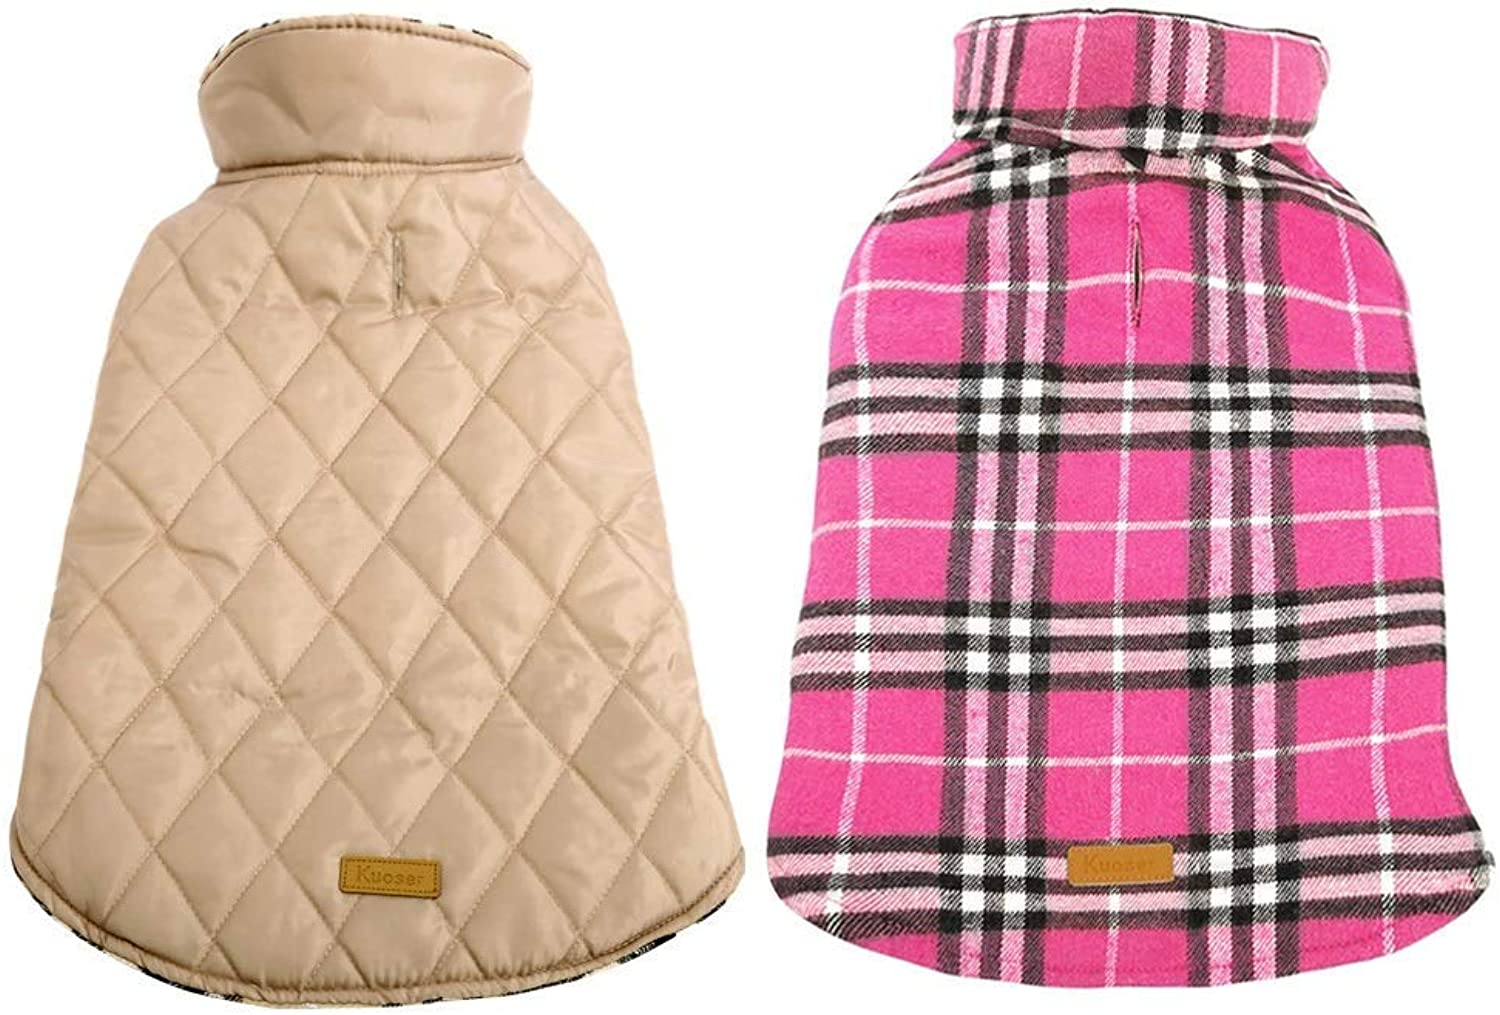 Kuoser Dog Coats Dog Jackets Waterproof Coats for Dogs Windproof Cold Weather Coats Small Medium Large Dog Clothes Reversible British Style Plaid Dog Sweaters Pets Apparel Winter Vest for Dog Pink M